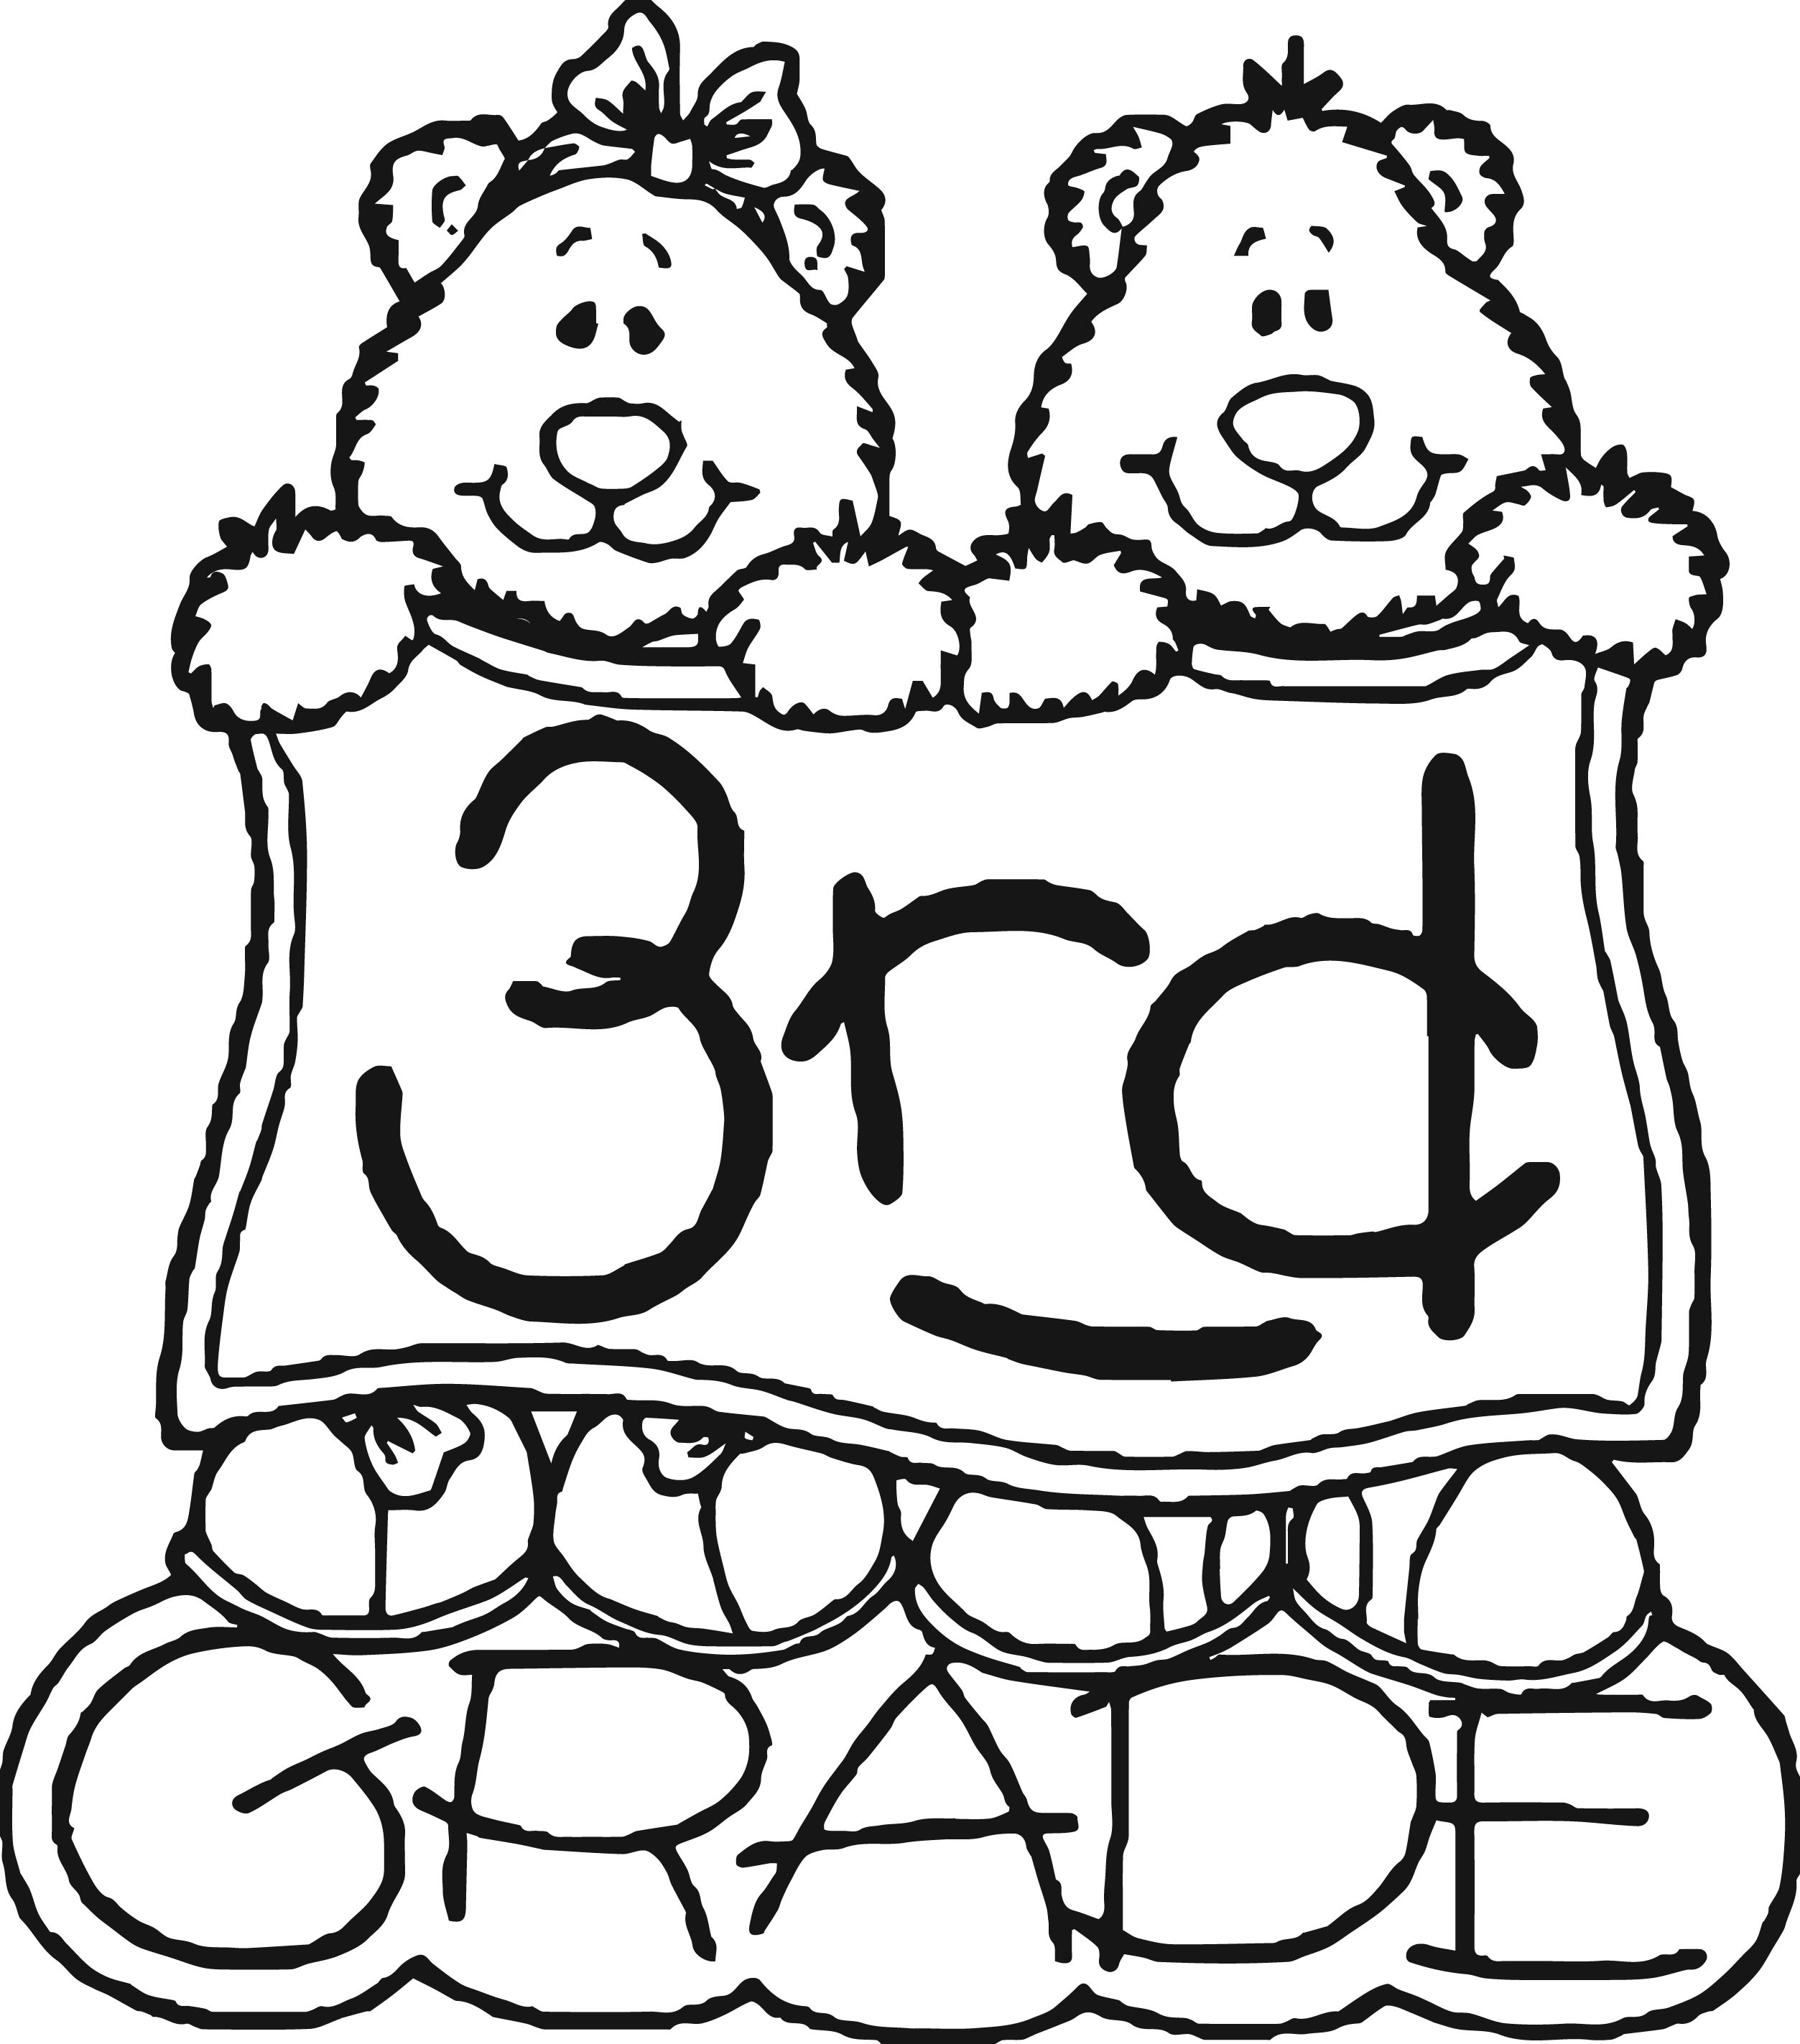 coloring for 3rd graders 3rd grade coloring pages12312 graders for 3rd coloring